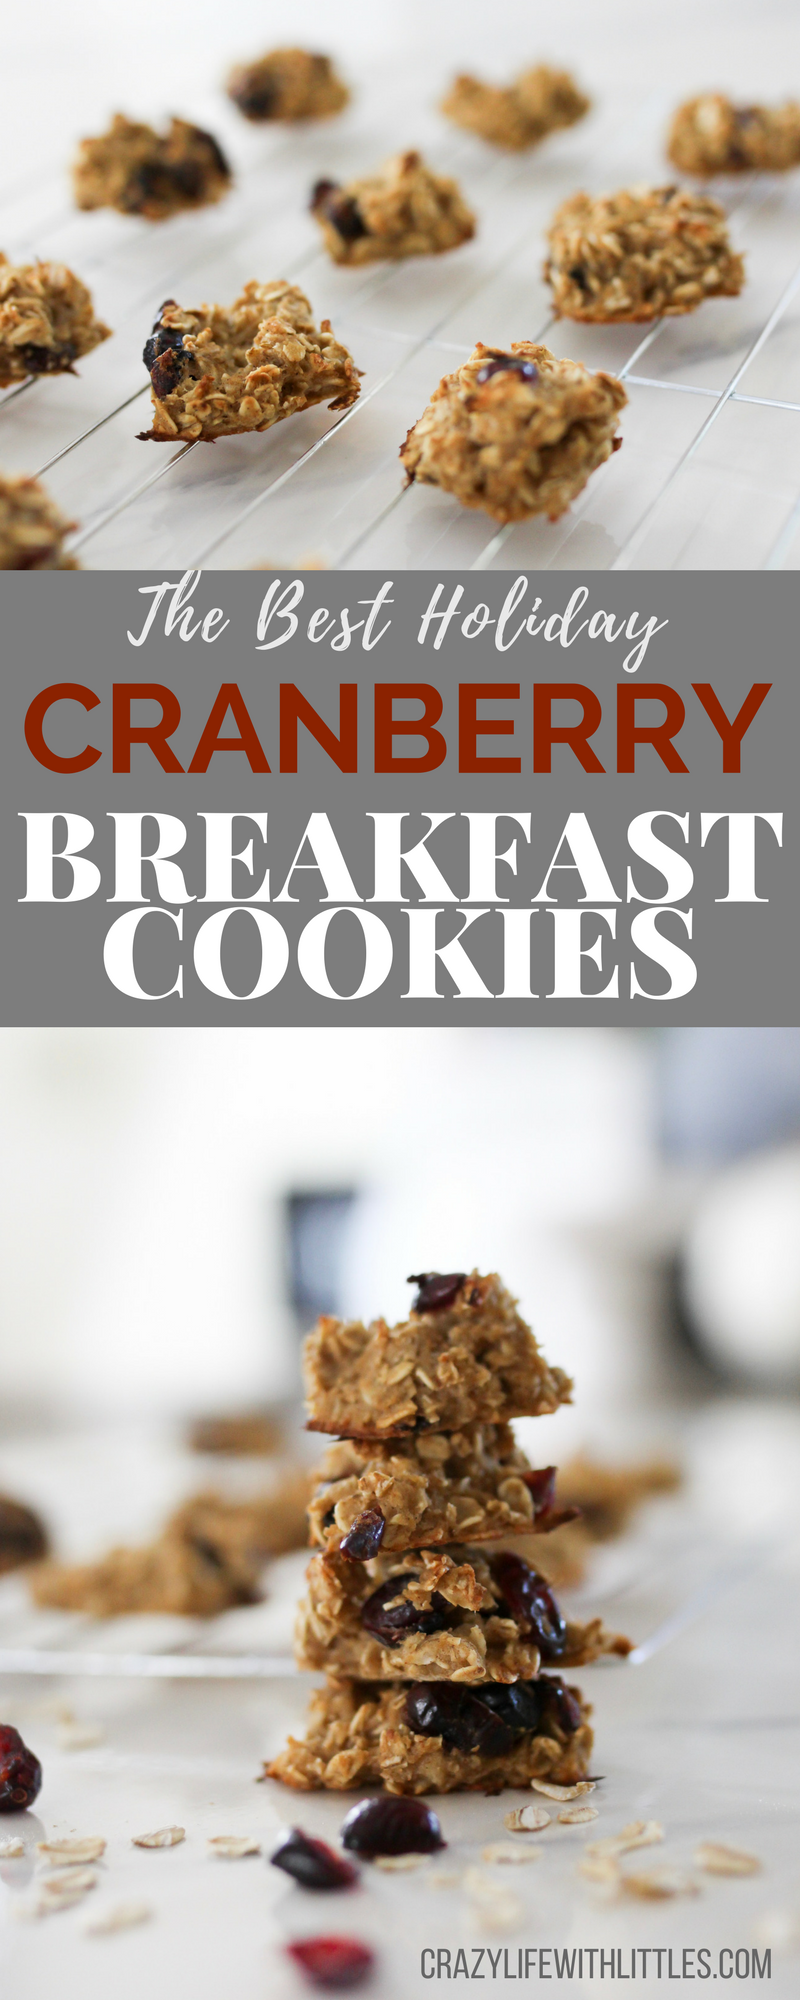 healthy oatmeal cranberry cookies, fresh cranberry oatmeal cookies, oatmeal cranberry white chocolate cookies, oatmeal cranberry walnut cookies, oatmeal cranberry chocolate chip cookies, oatmeal cranberry bars, oatmeal cranberry cookies vegan